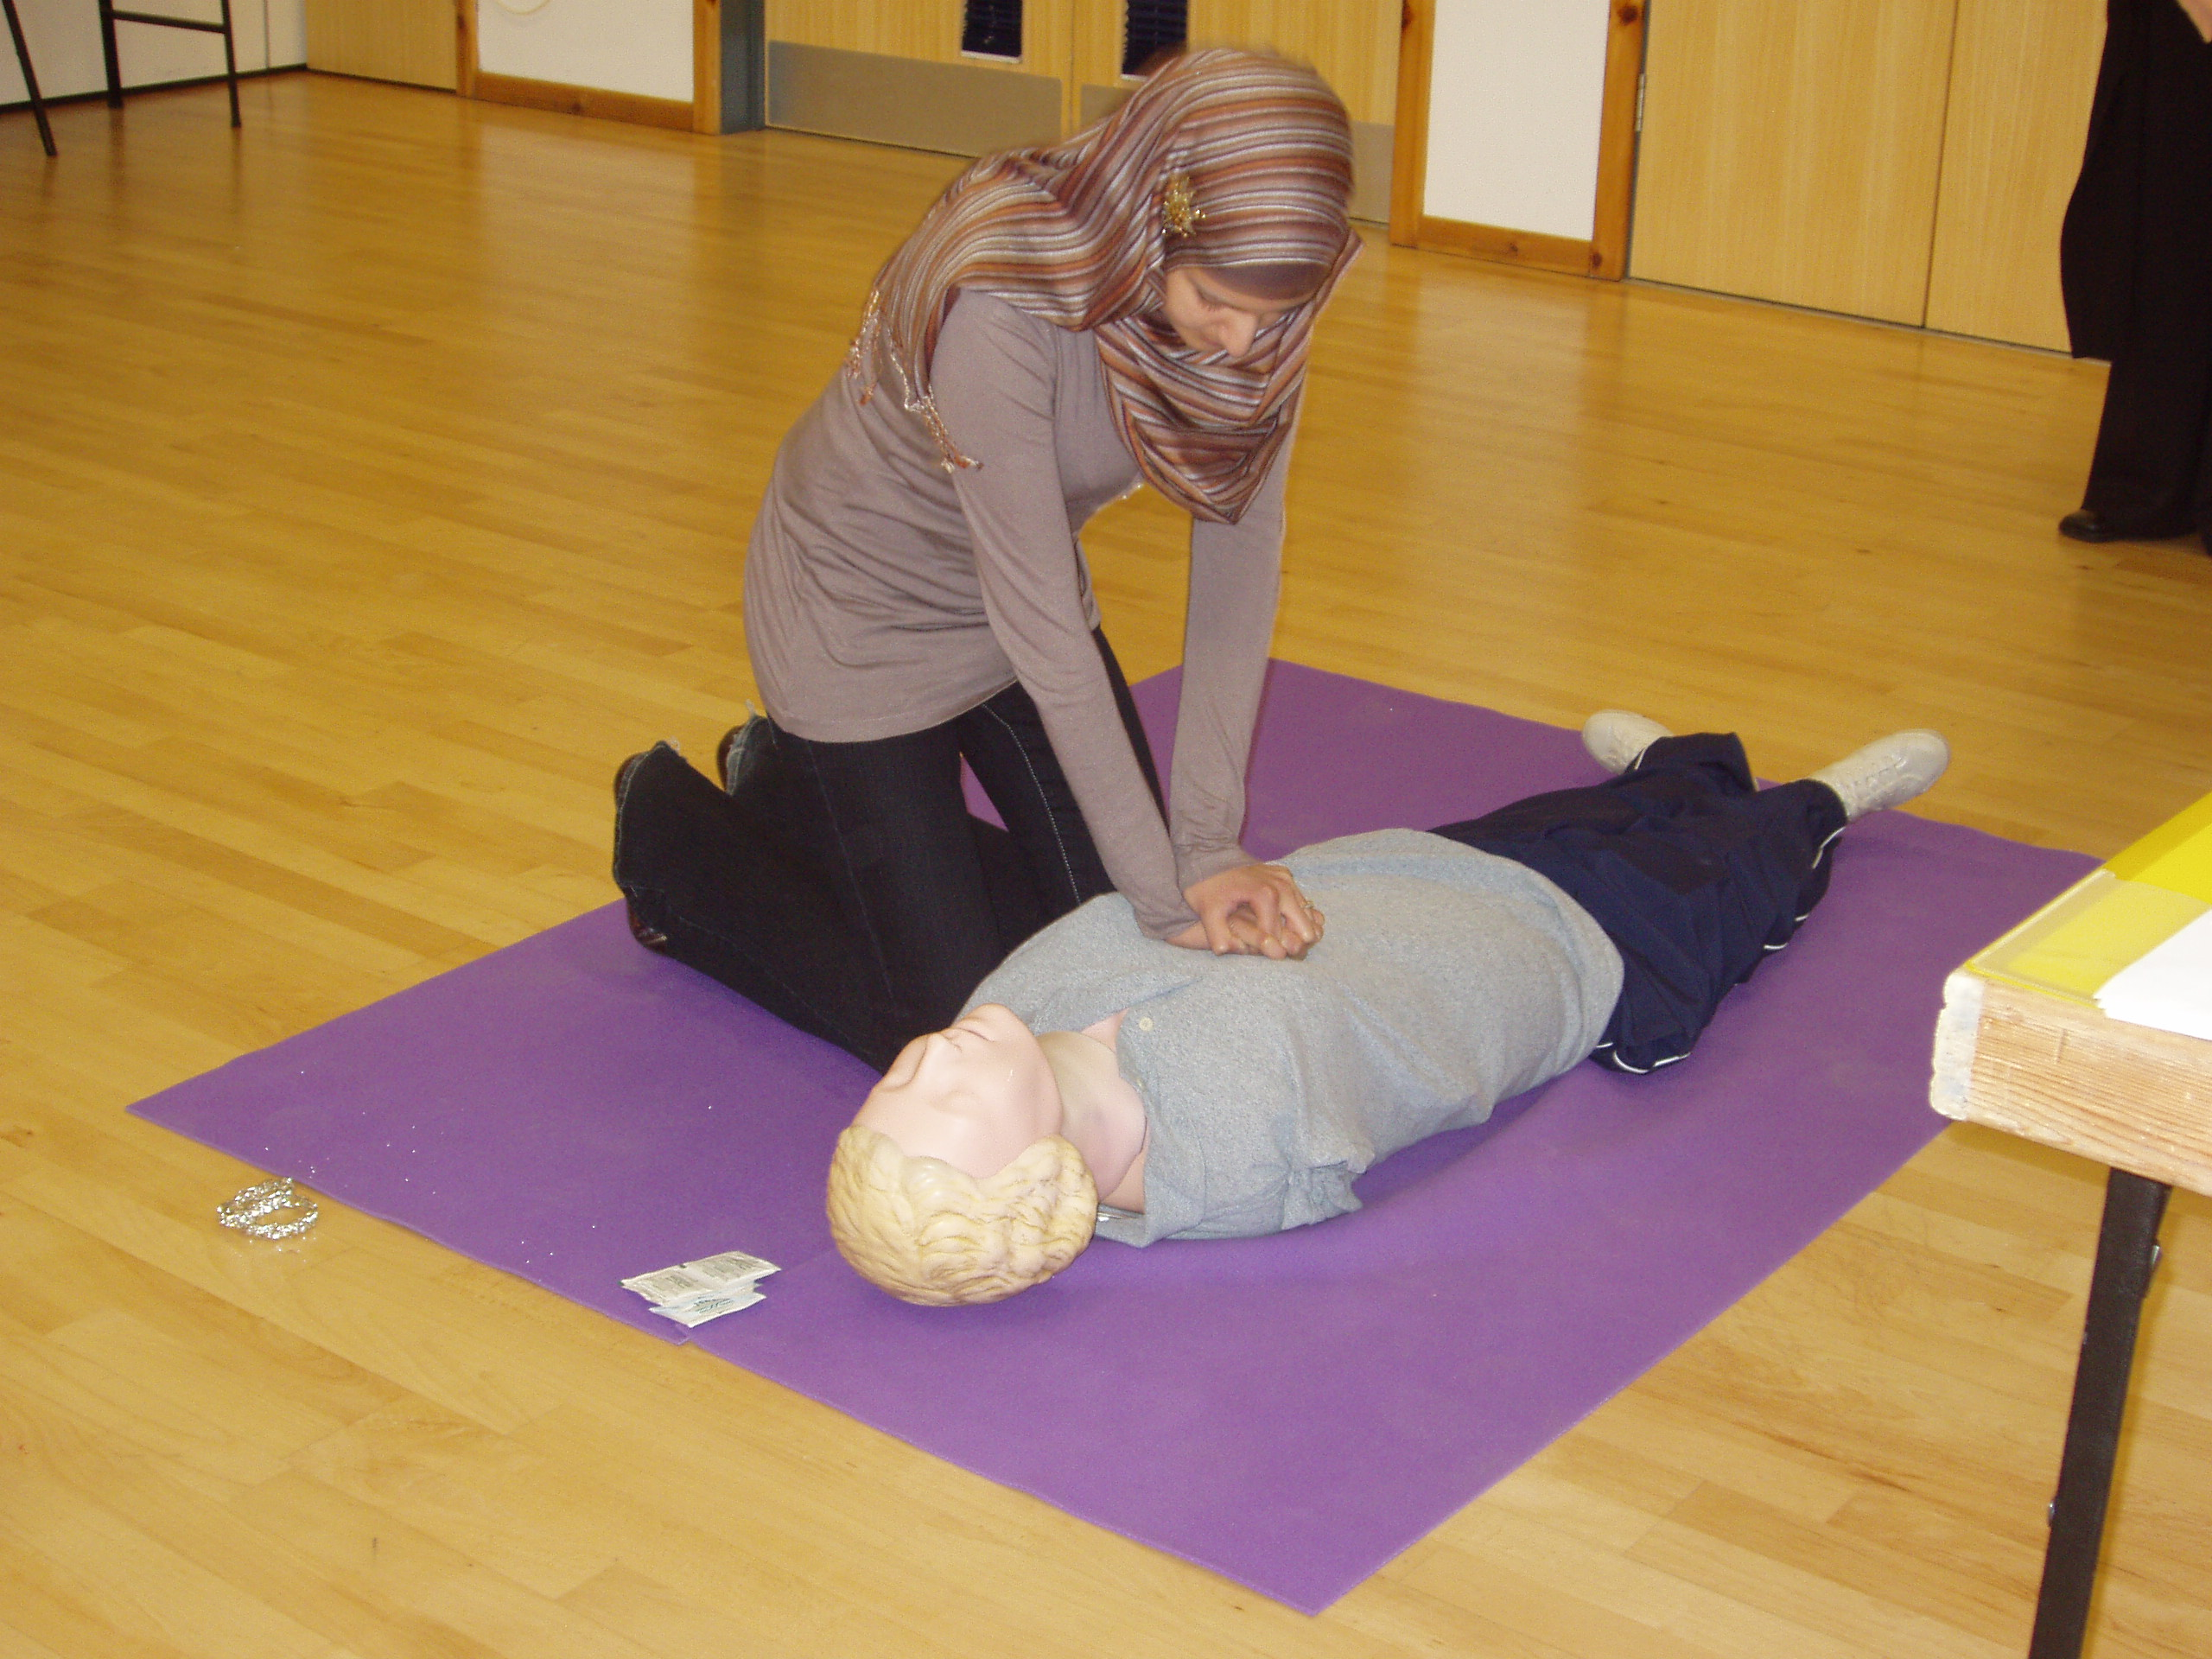 Photo of a first aid training session, person being resuscitated